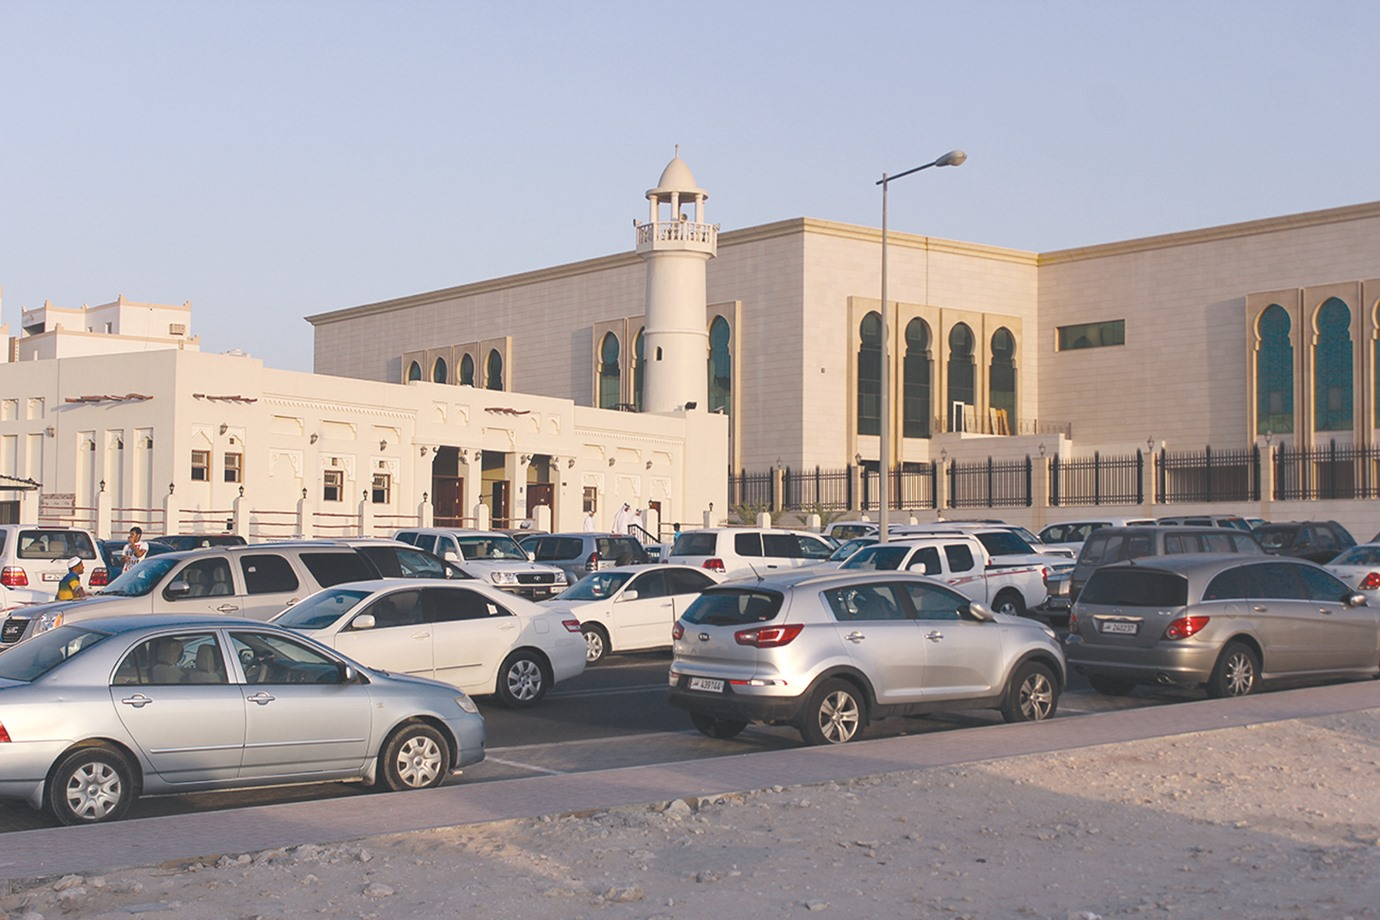 Be sensible when you park your car for Friday Prayer